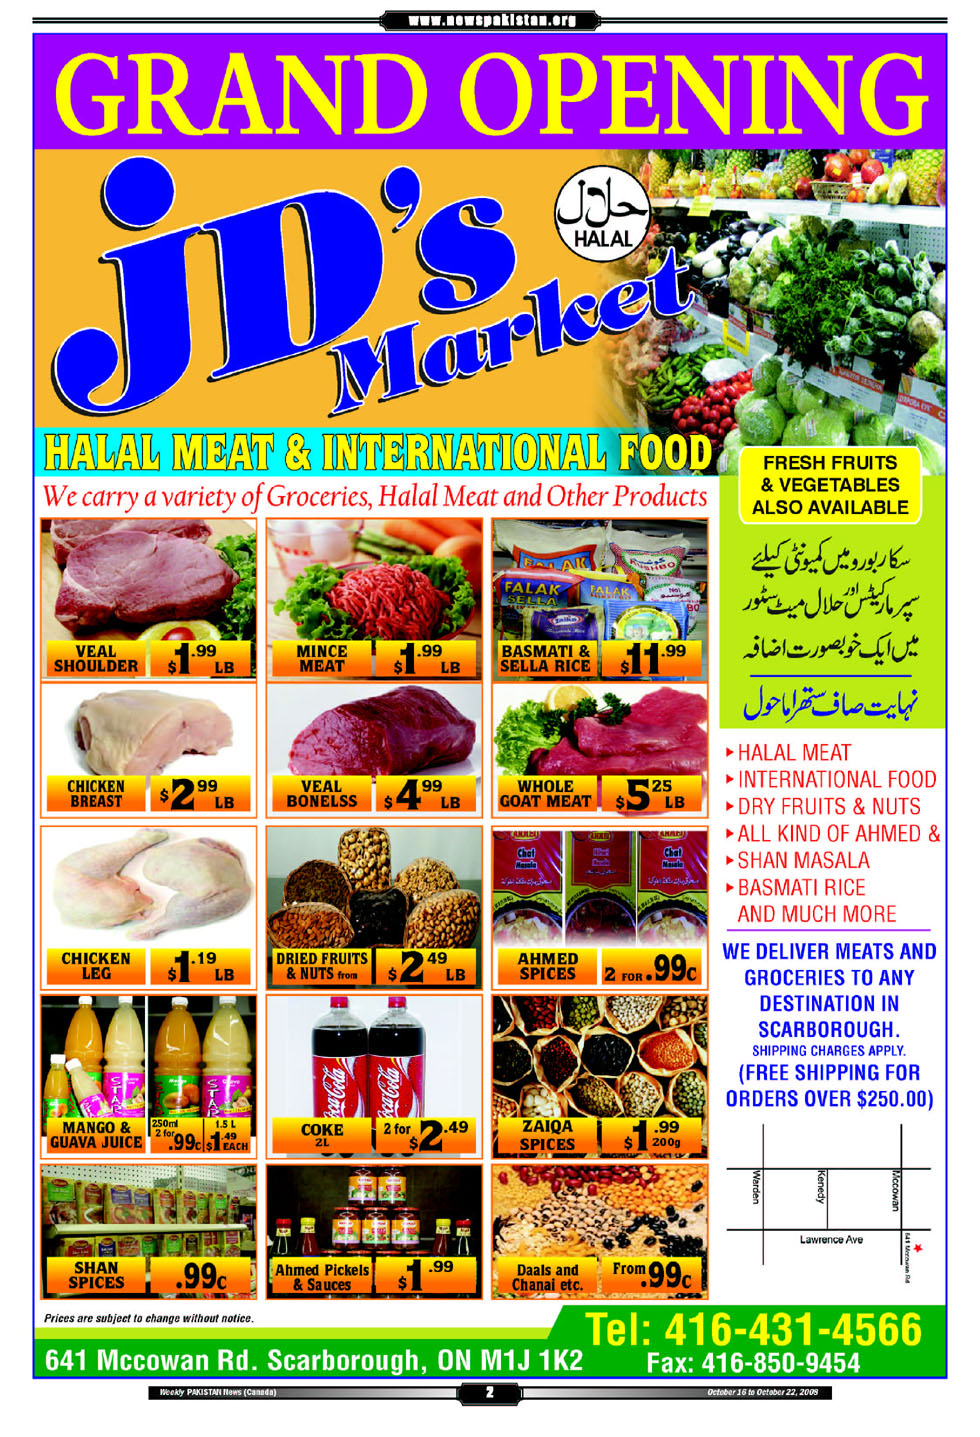 JD's Market and Halal Meat